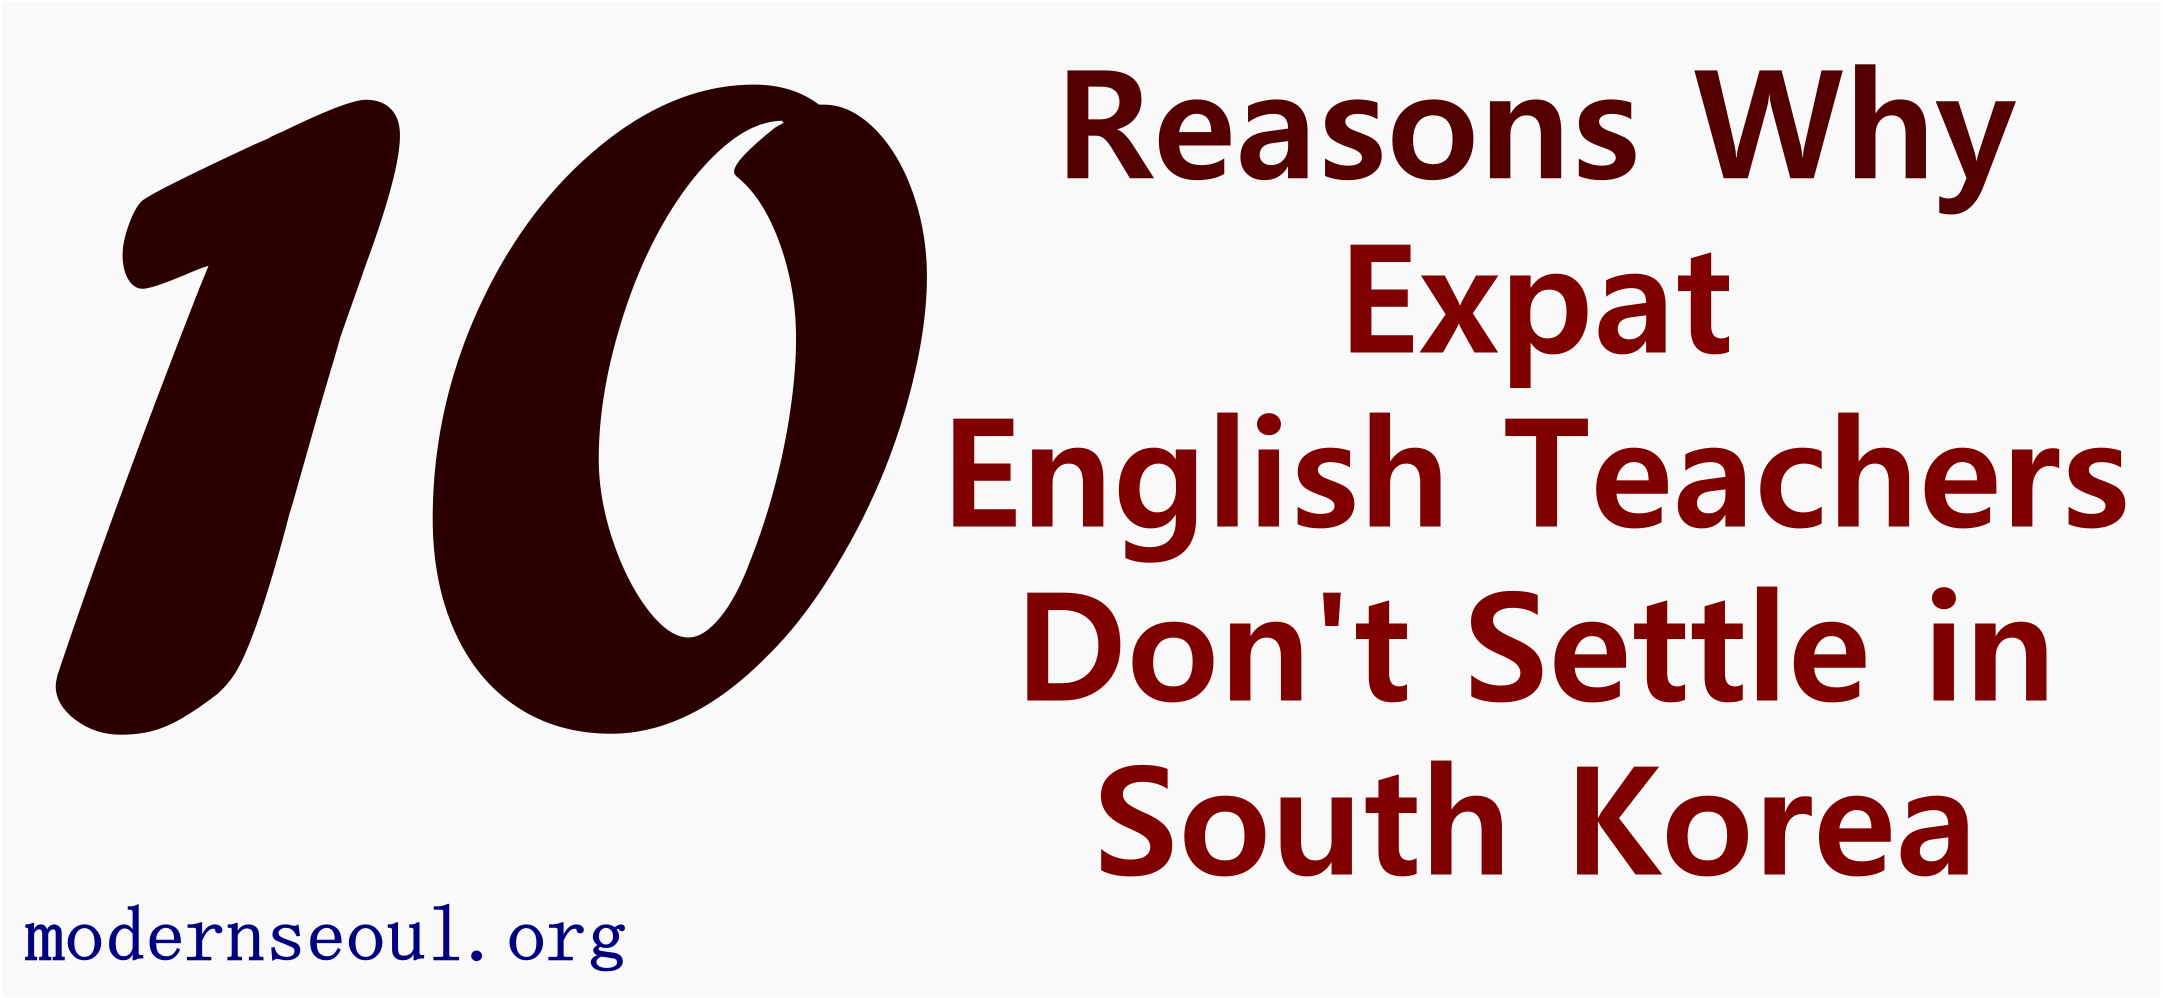 10 reasons why Expat English Teachers Don't Settle in South Korea ...